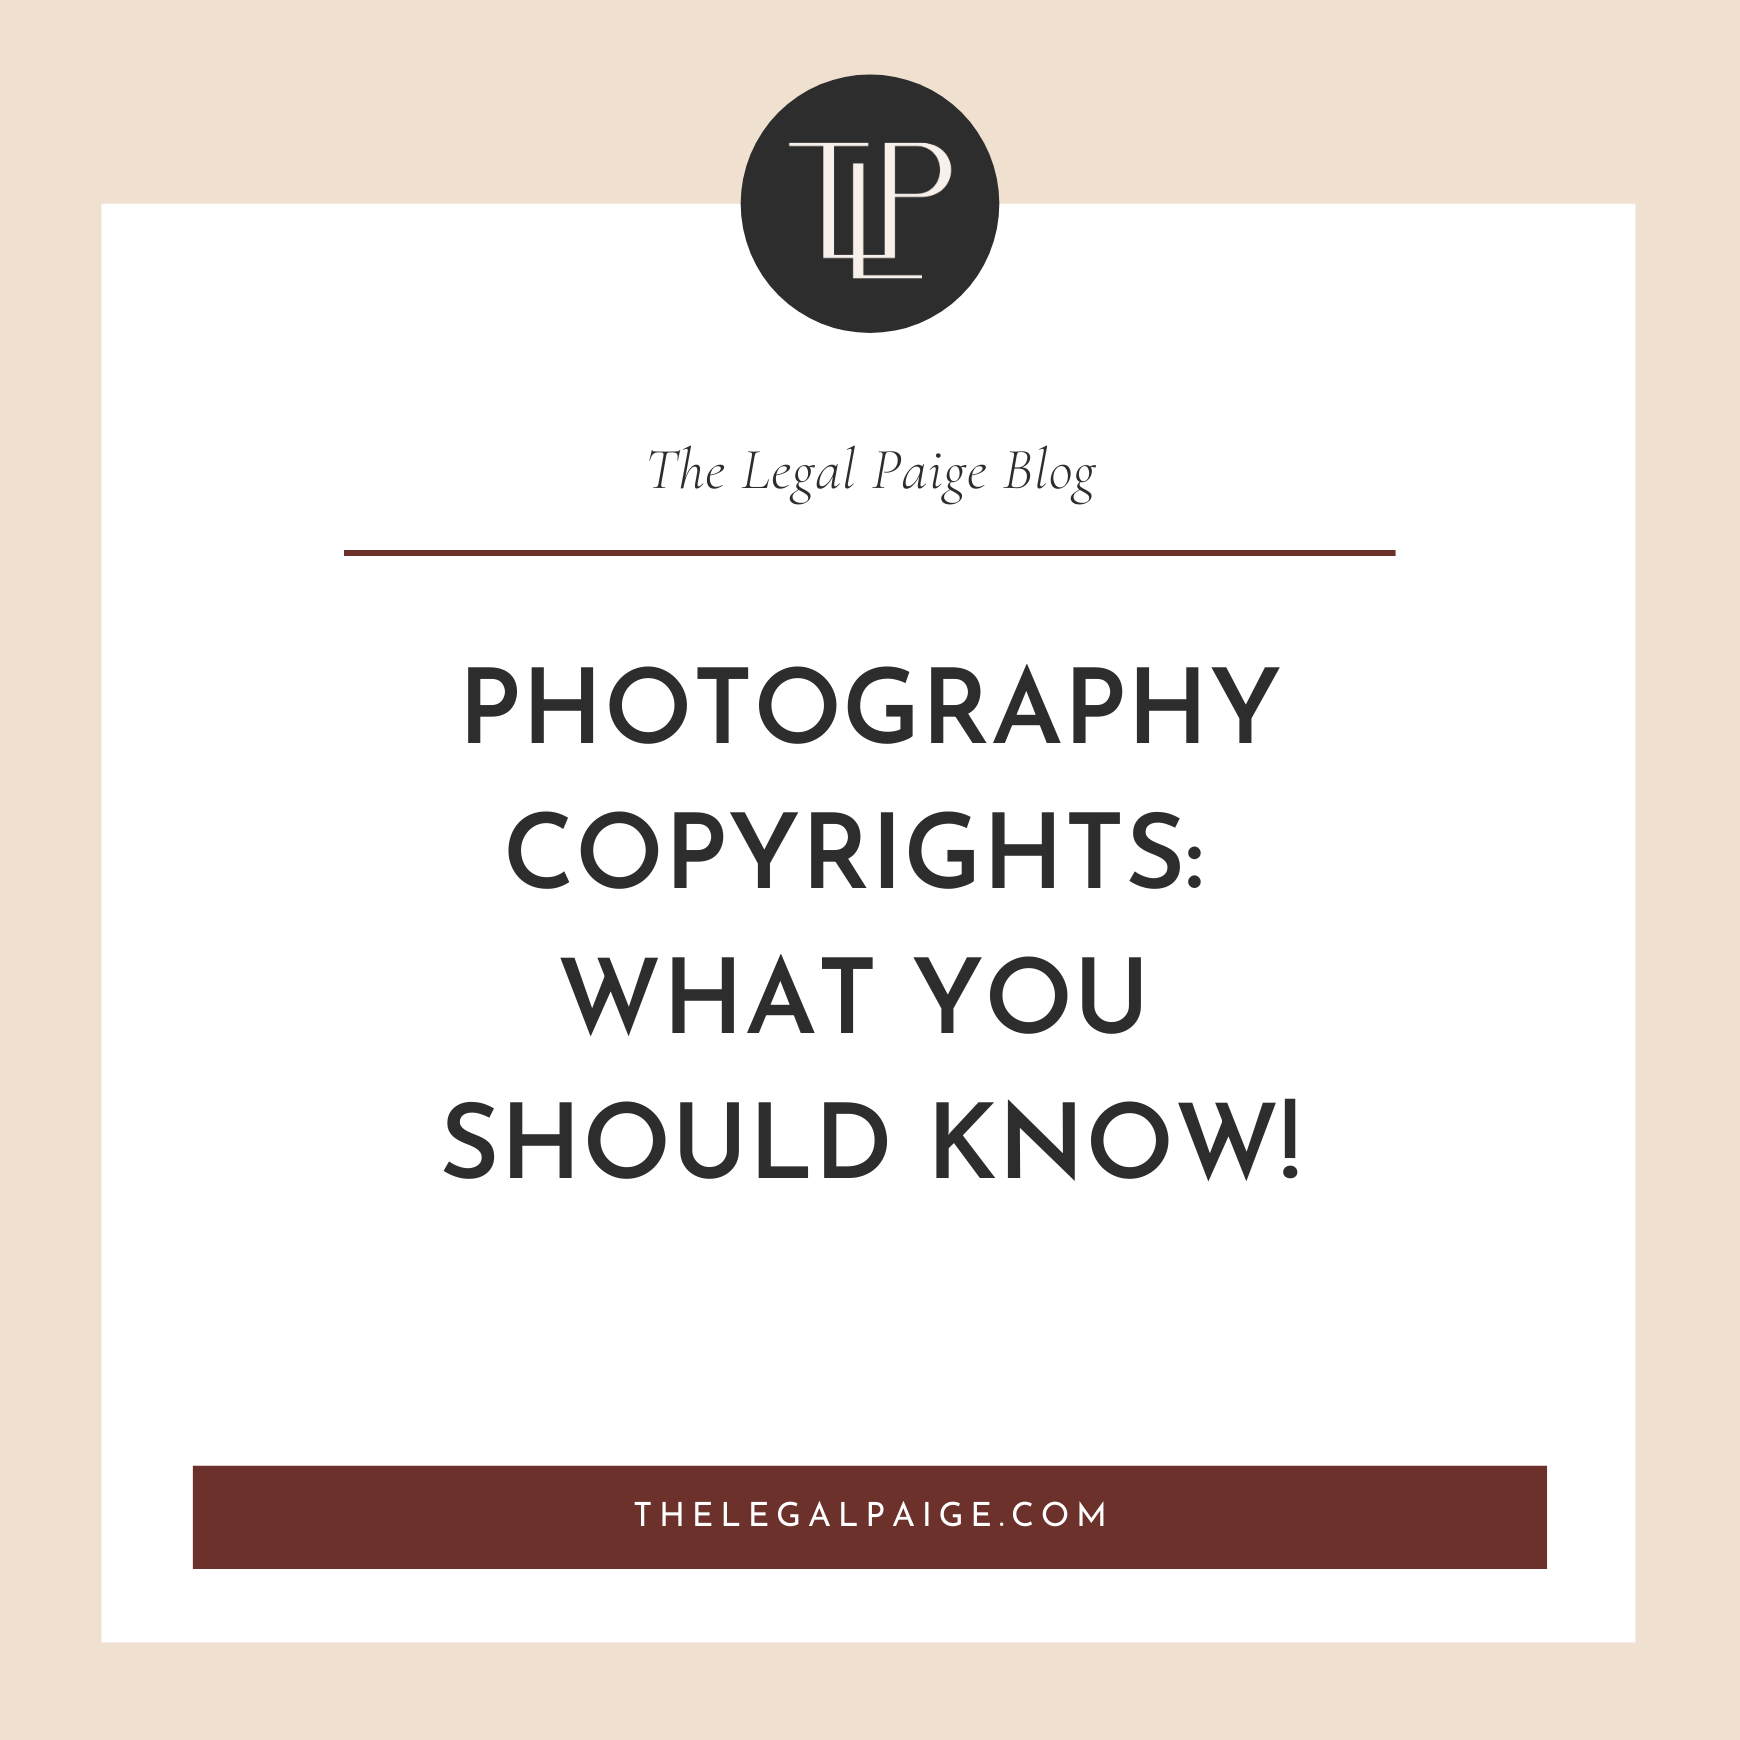 Photography Copyrights: What you should know!